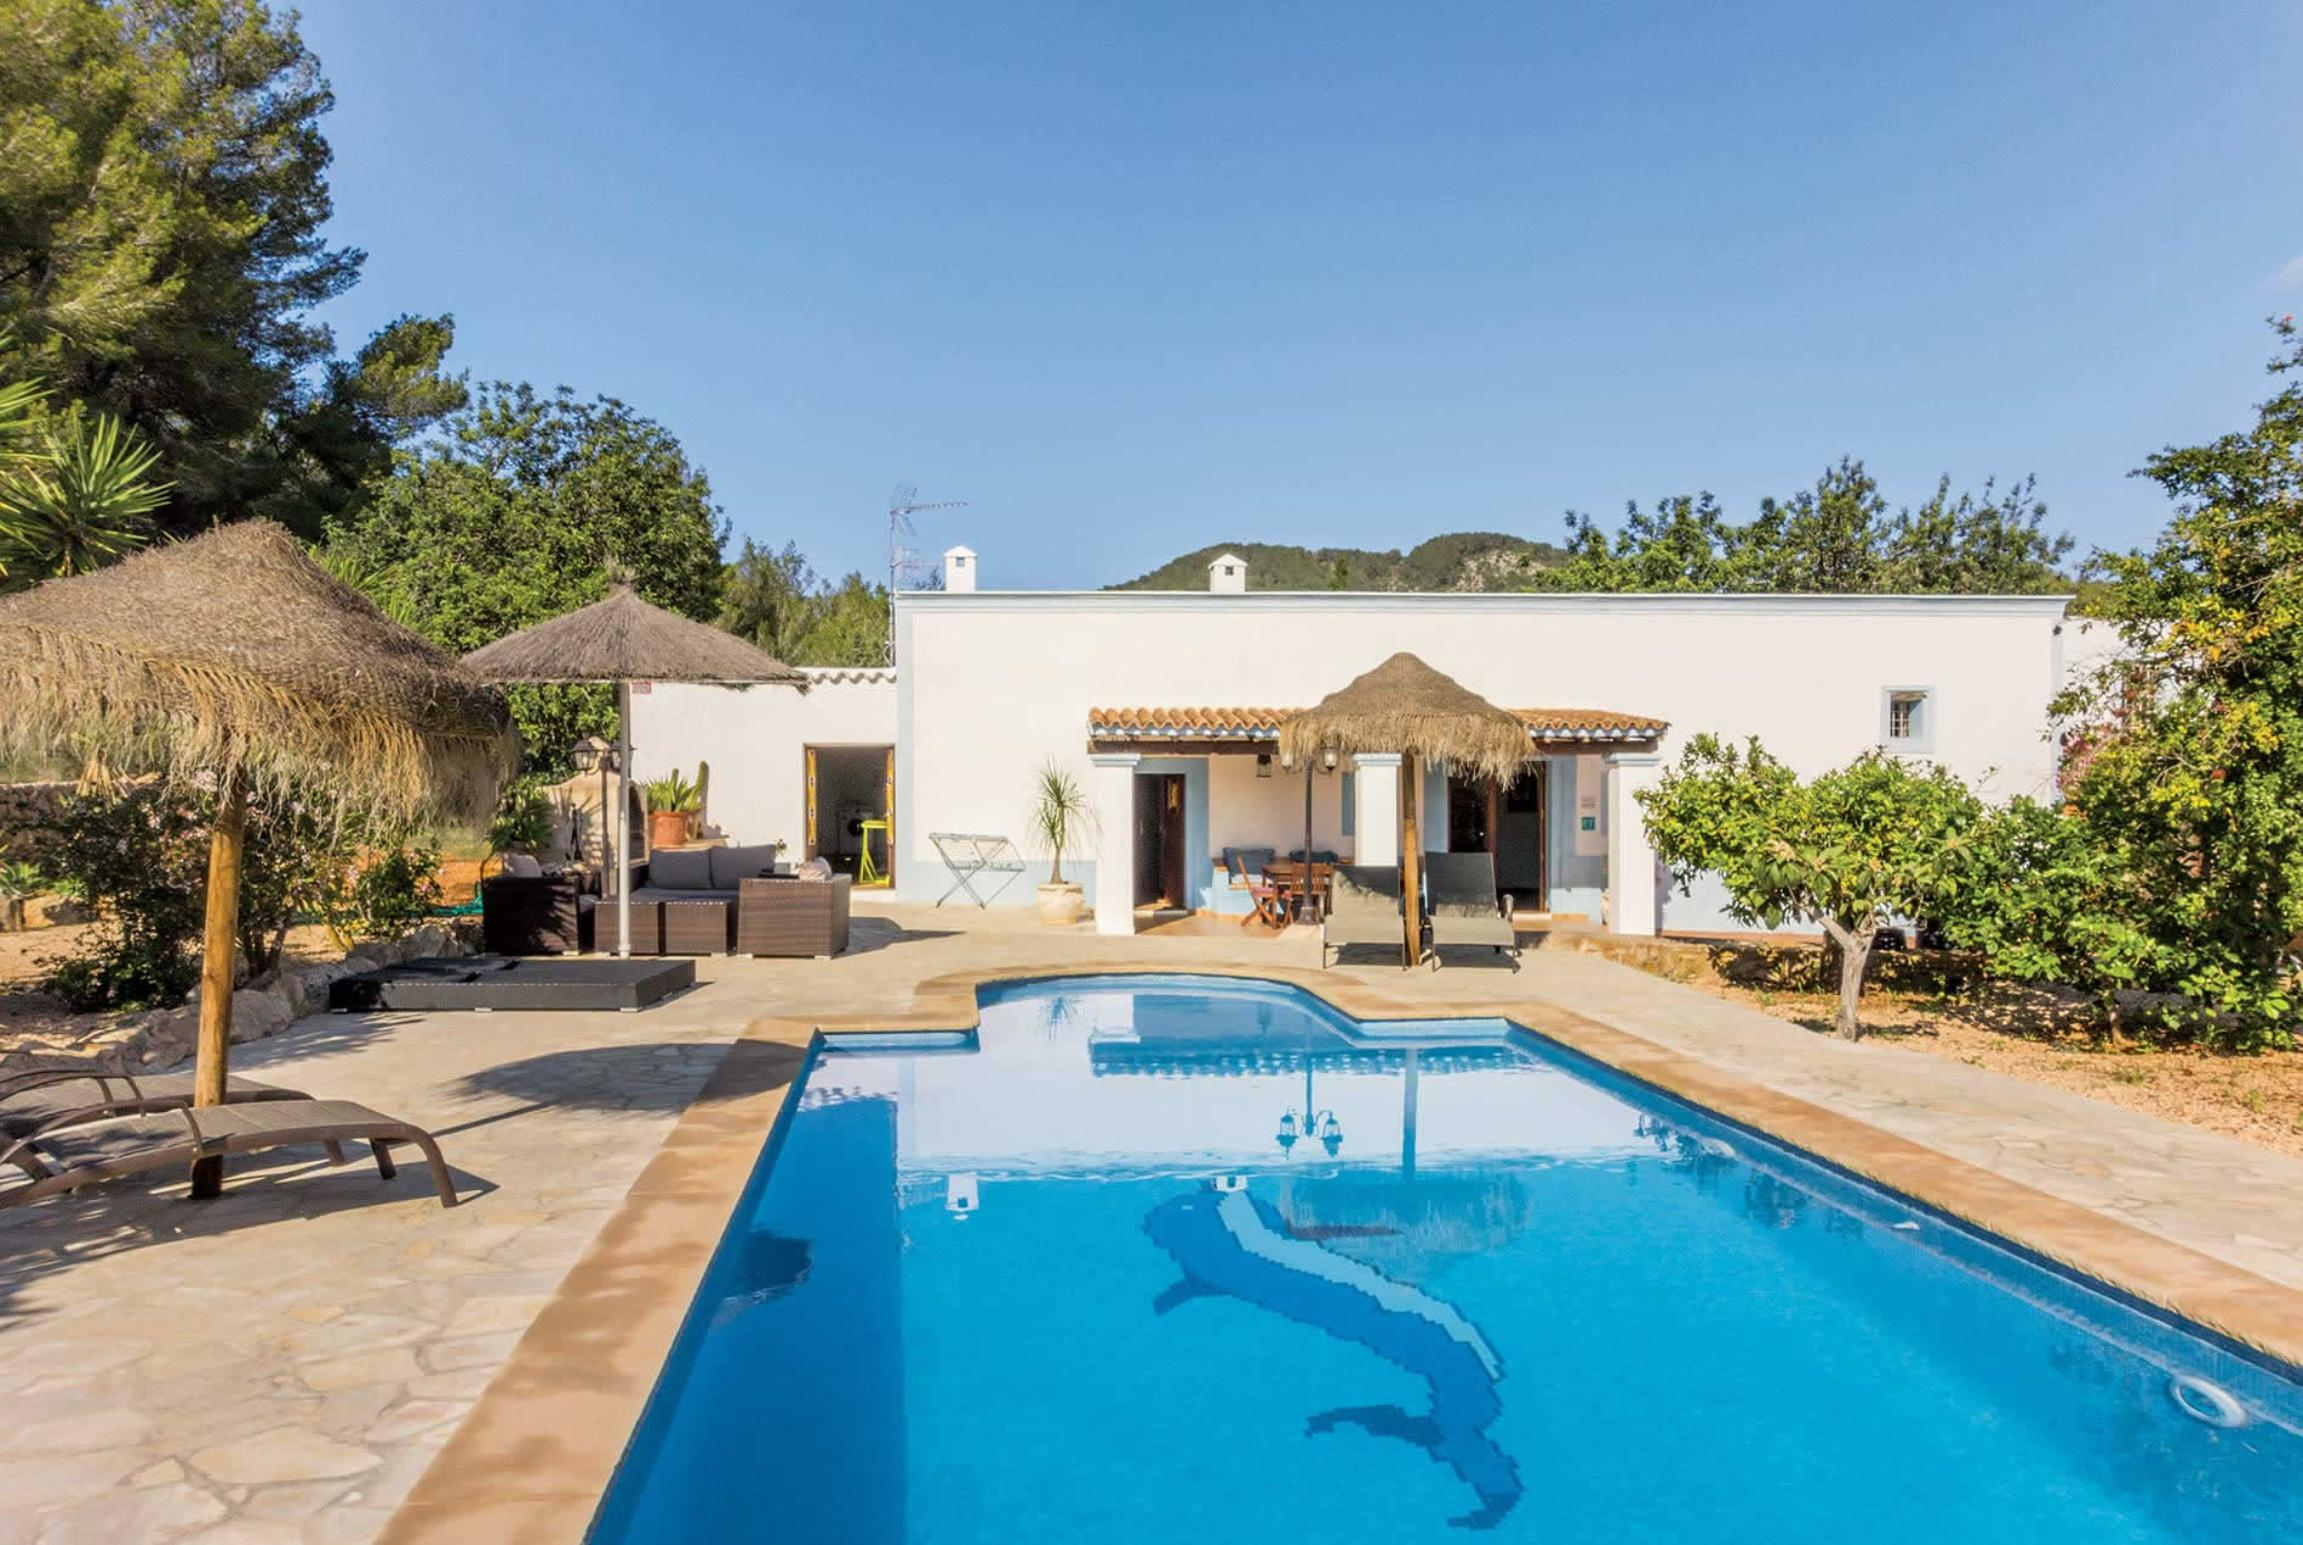 Read more about Can Porchu villa